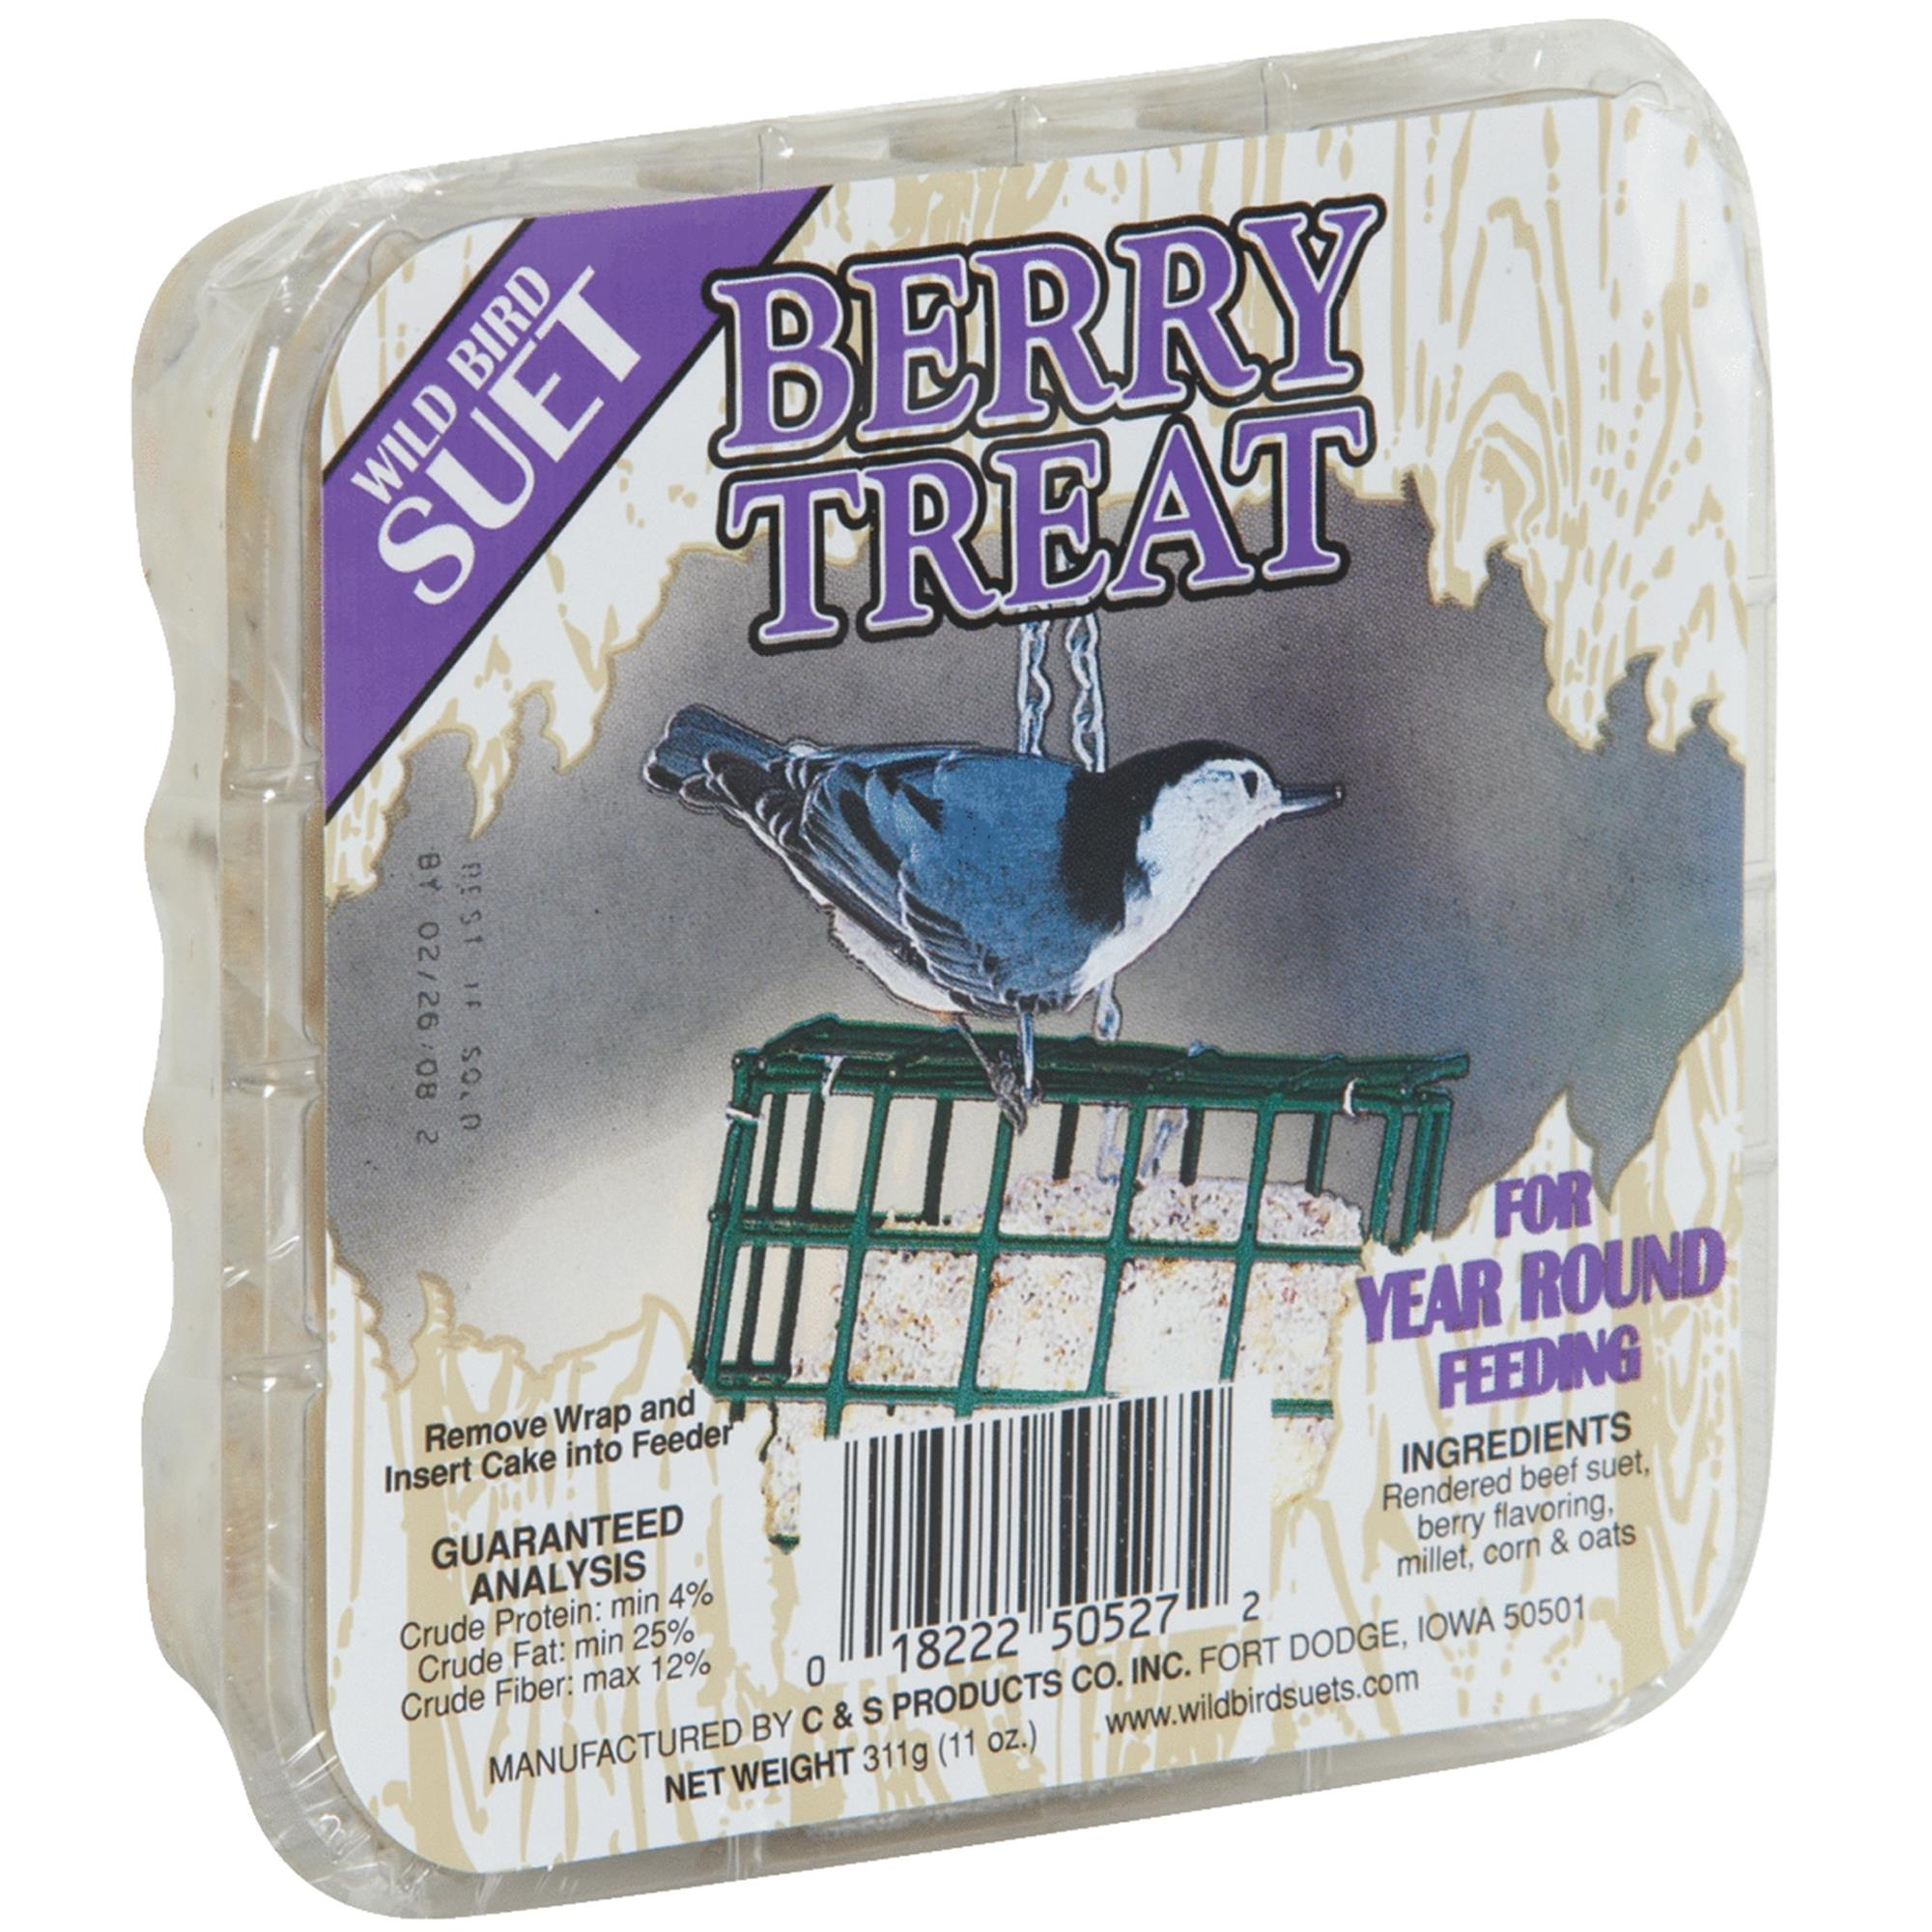 018222505272 Upc Berry Treat Wild Bird Suet Upc Lookup